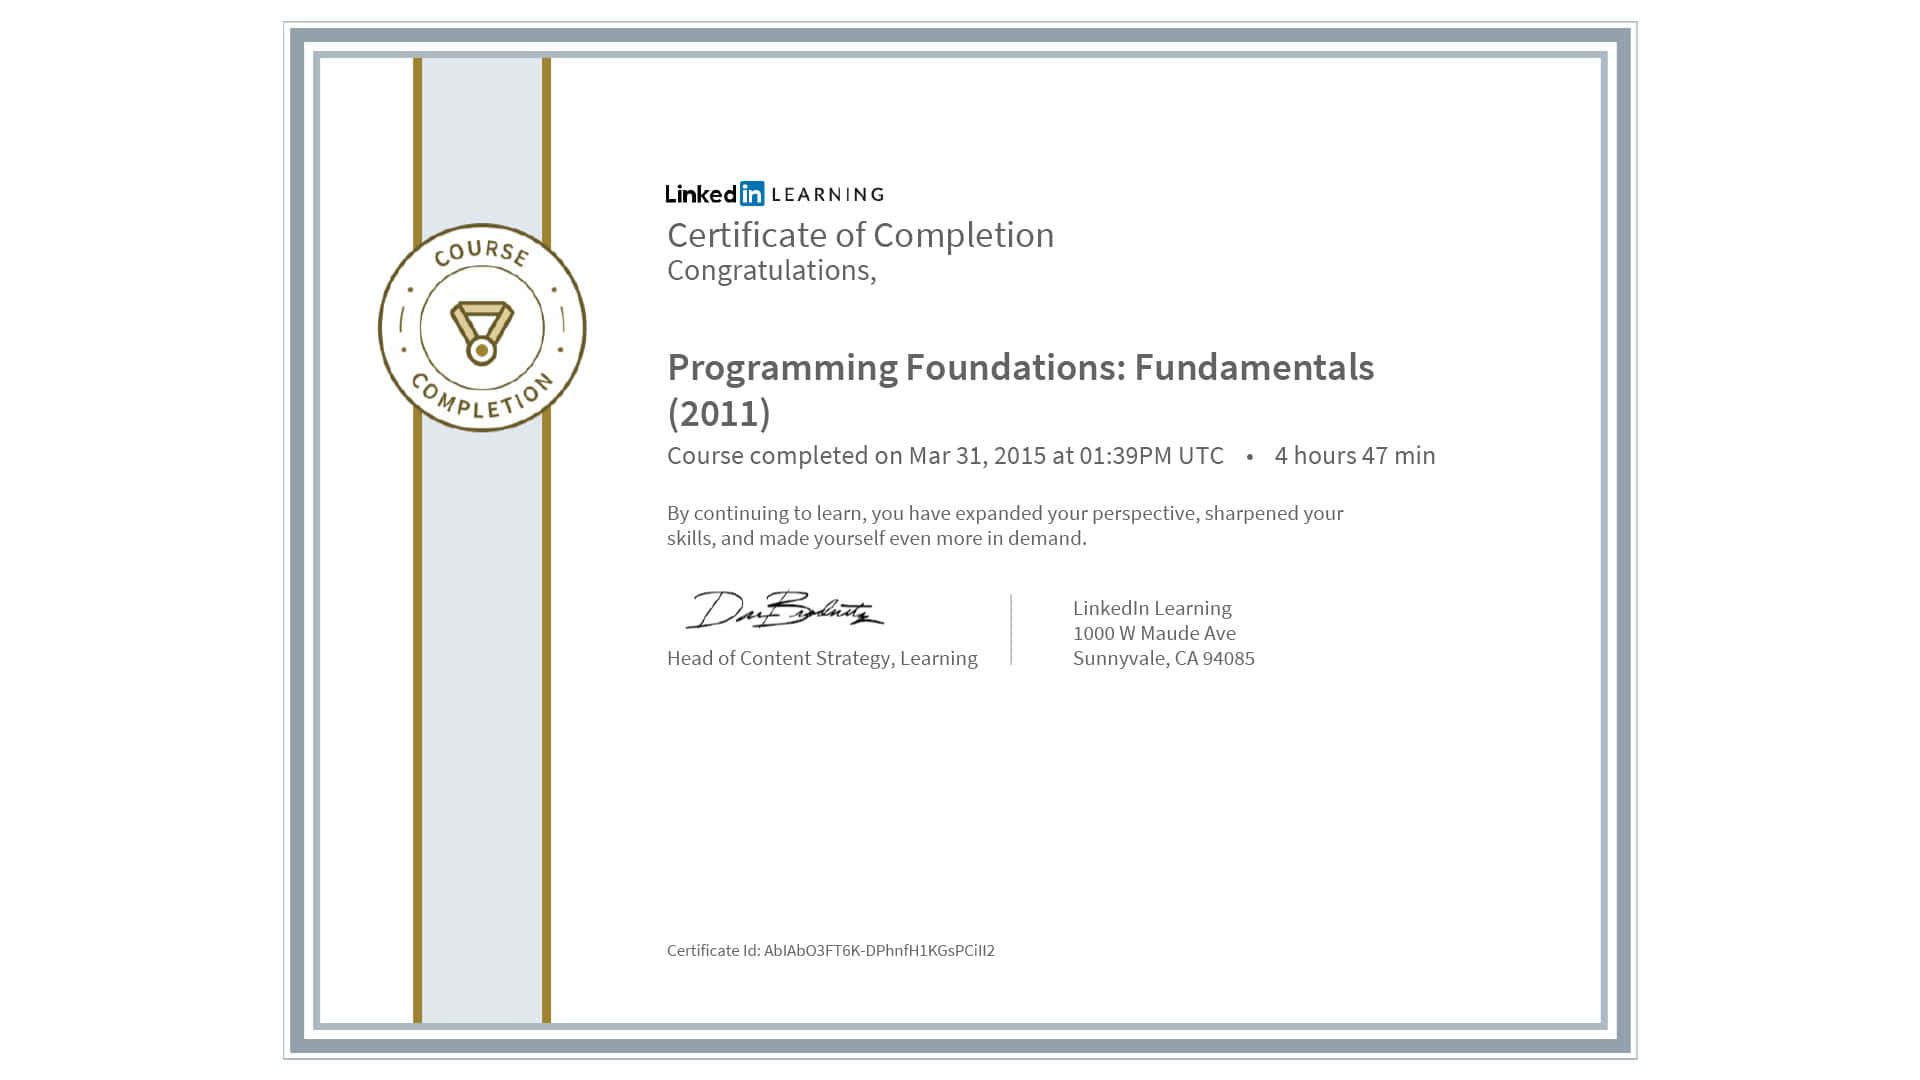 completion certificate fundamentals programming certification course